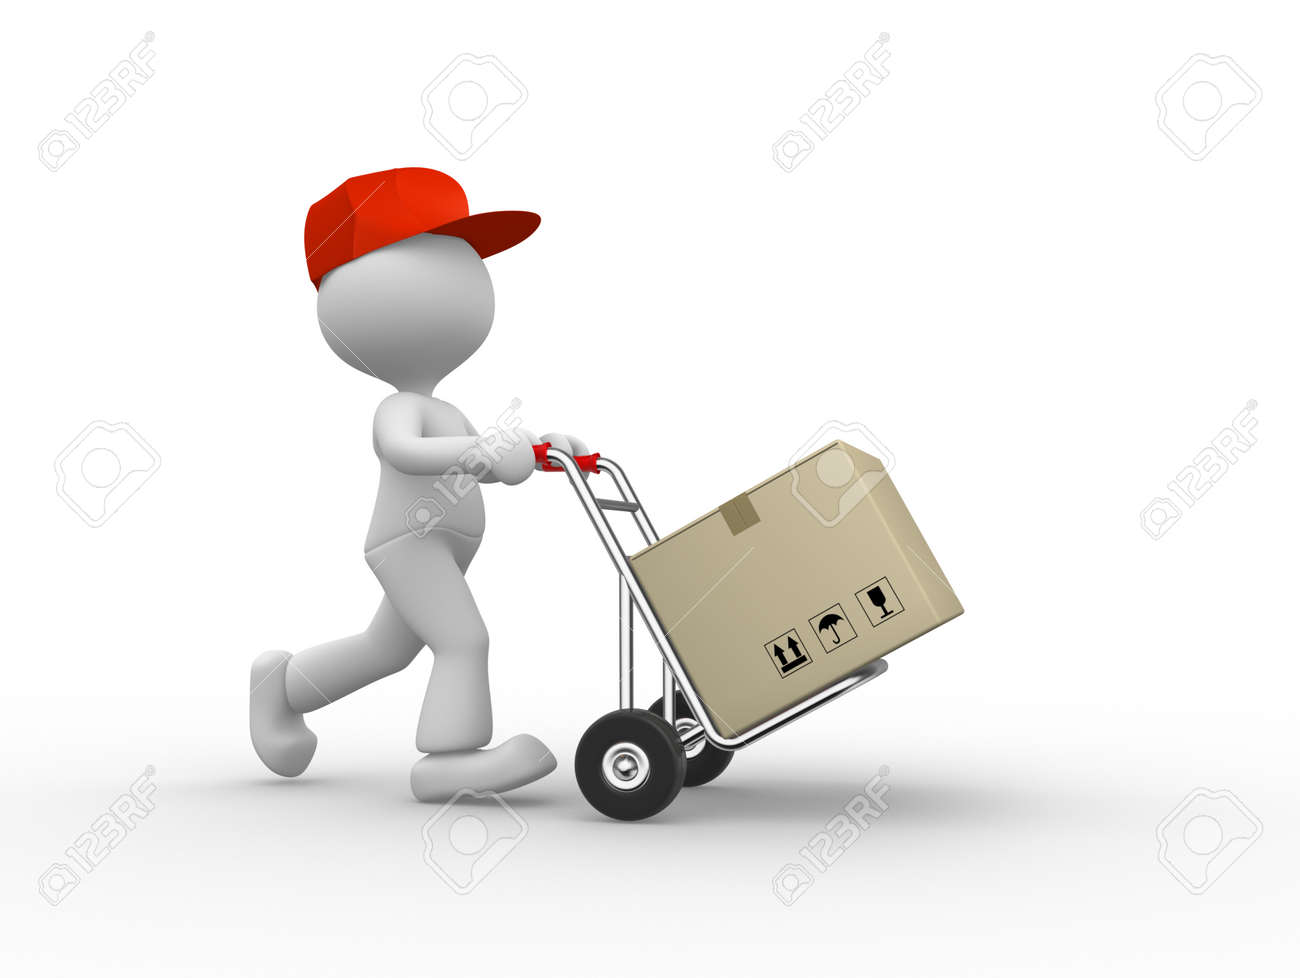 3d people - man, person with hand truck and packages. Postman. Stock Photo - 25927792